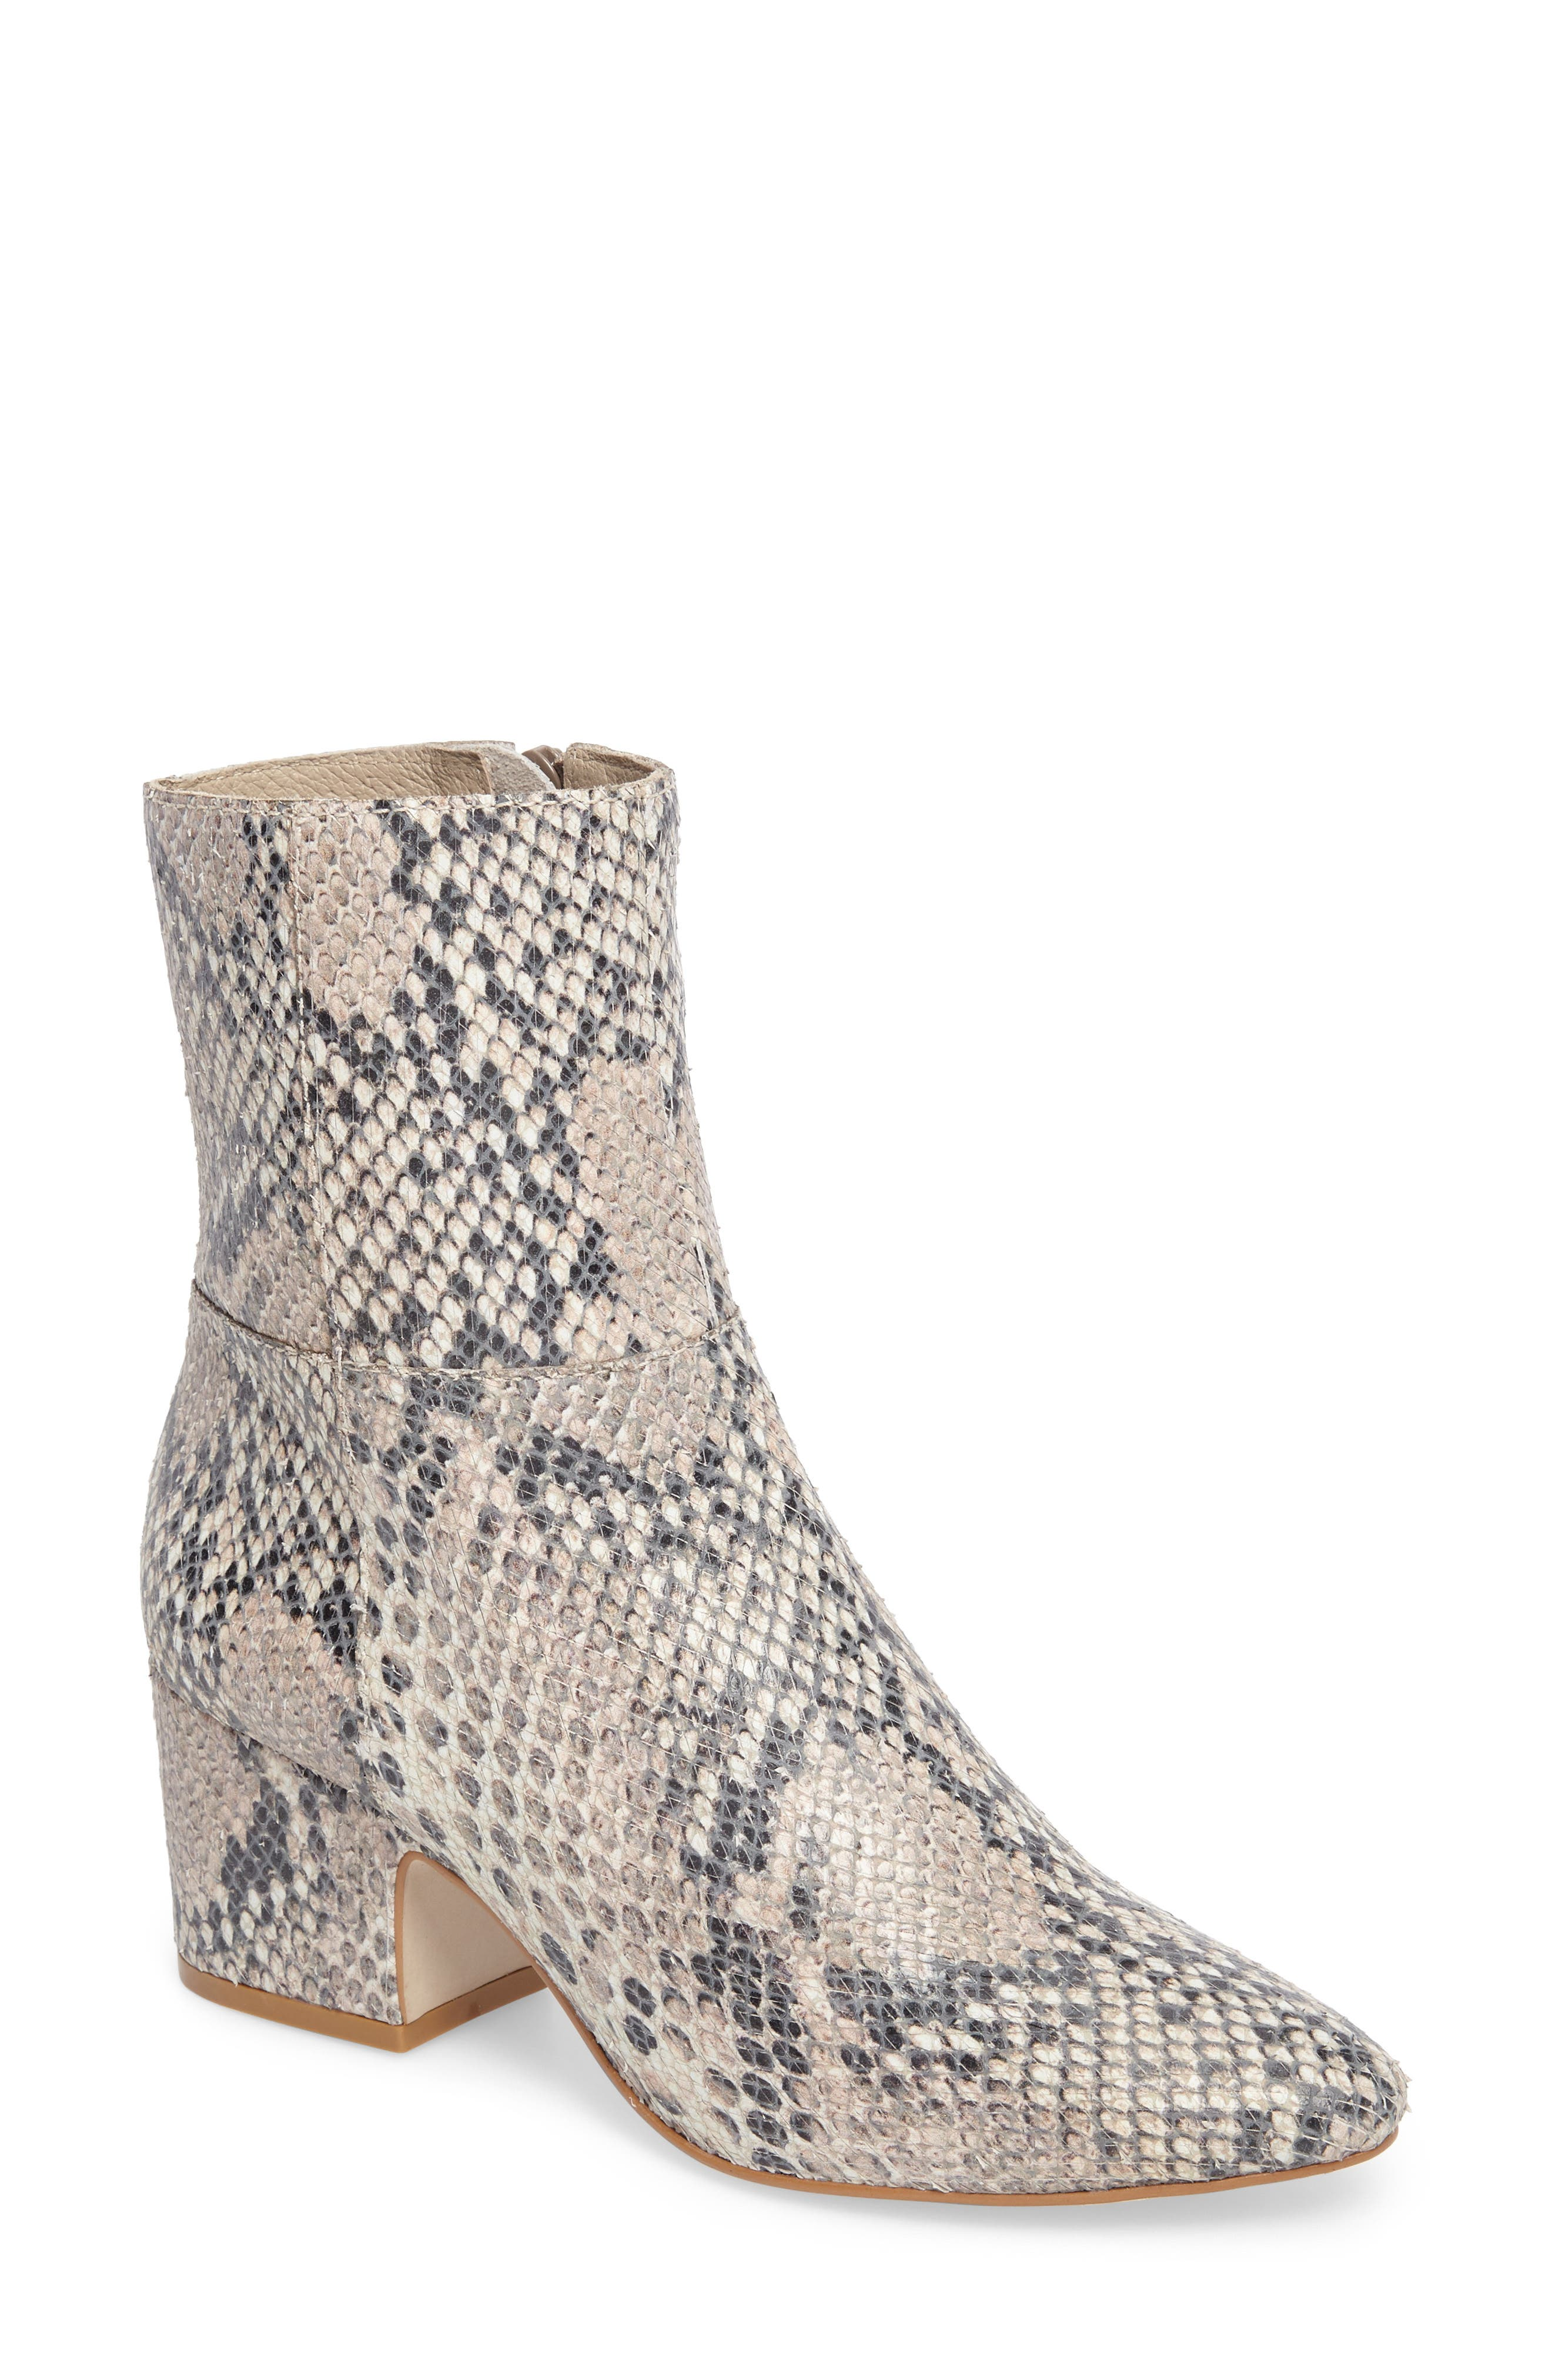 At Ease Genuine Calf Hair Bootie,                         Main,                         color, NATURAL SNAKE LEATHER